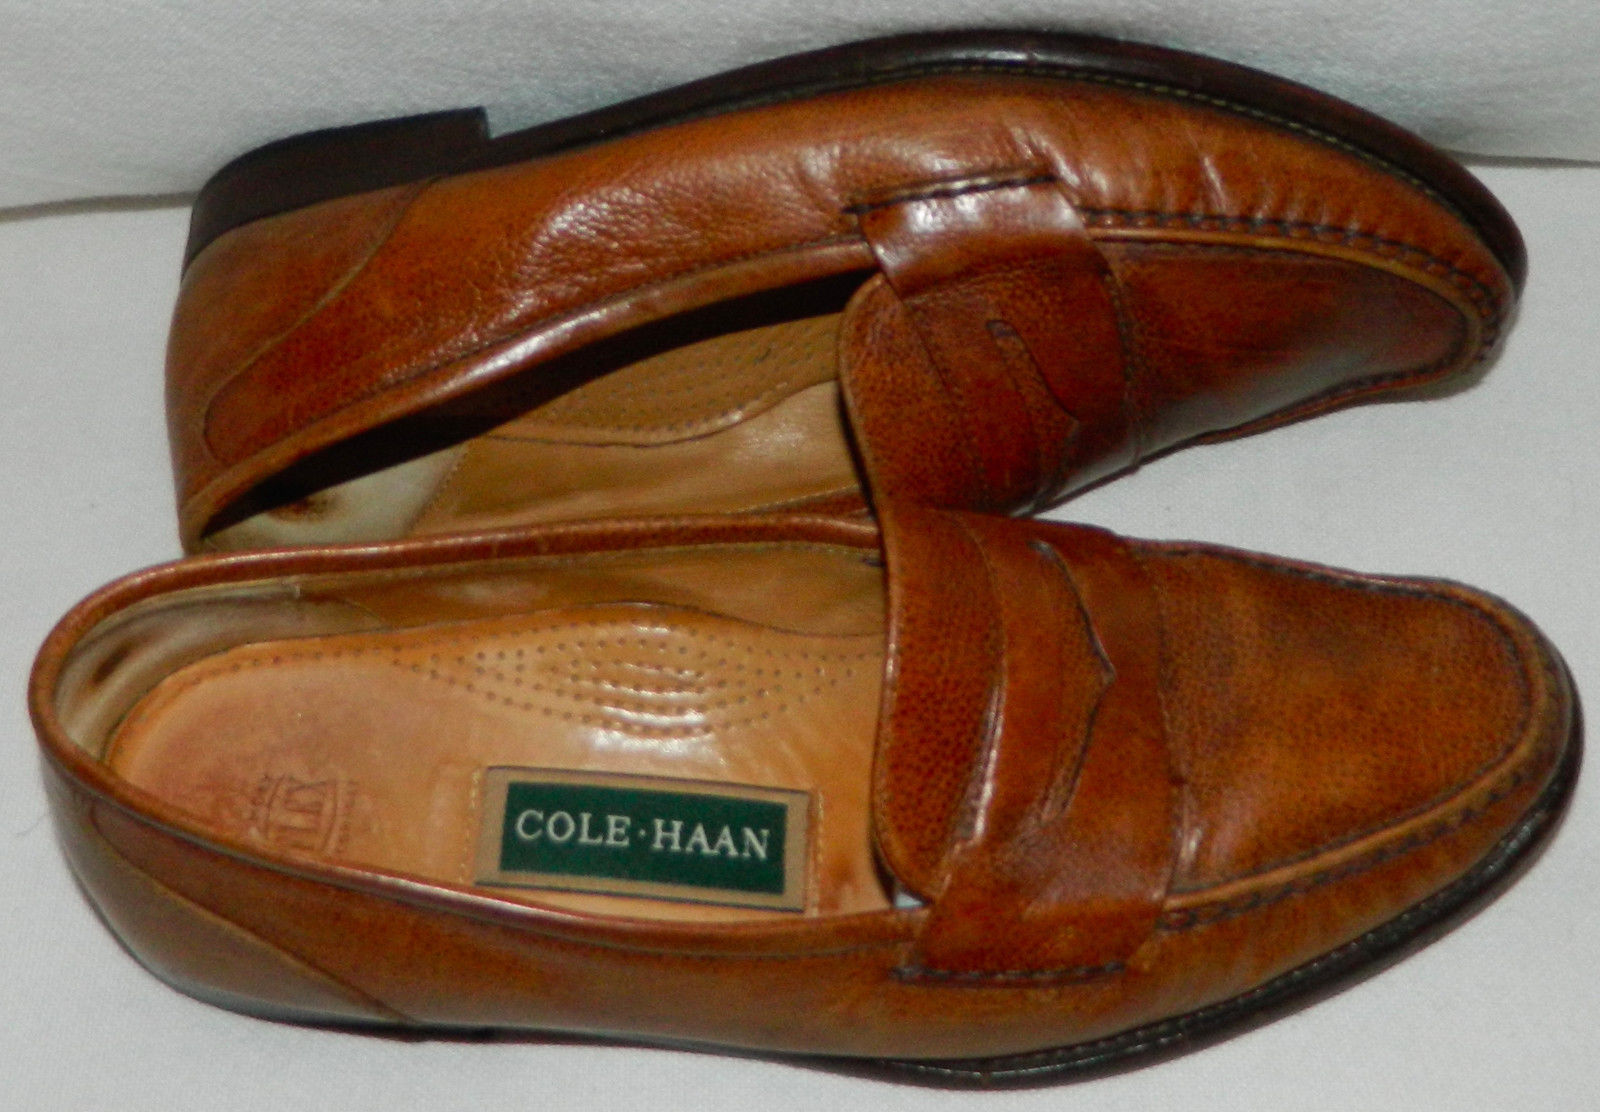 1fe459c585f COLE HAAN Penny LOAFERS Sz. 9 DRESS SHOES Copper BROWN Leather GREAT Look!!